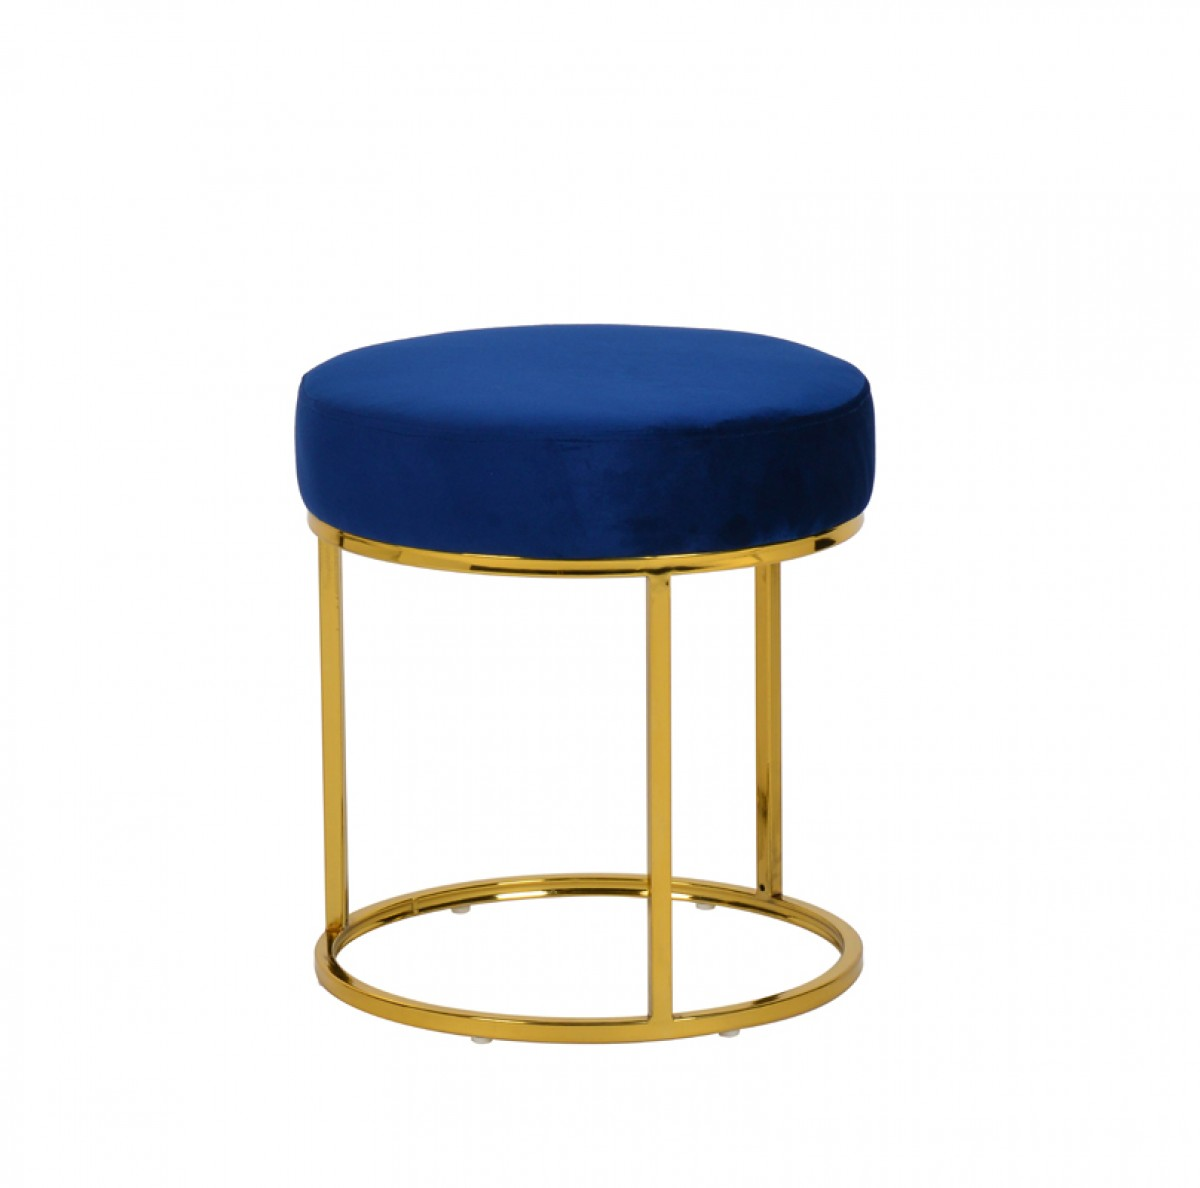 Brilliant Modrest Elmont Modern Blue Velvet Gold Stool Ottoman Pdpeps Interior Chair Design Pdpepsorg